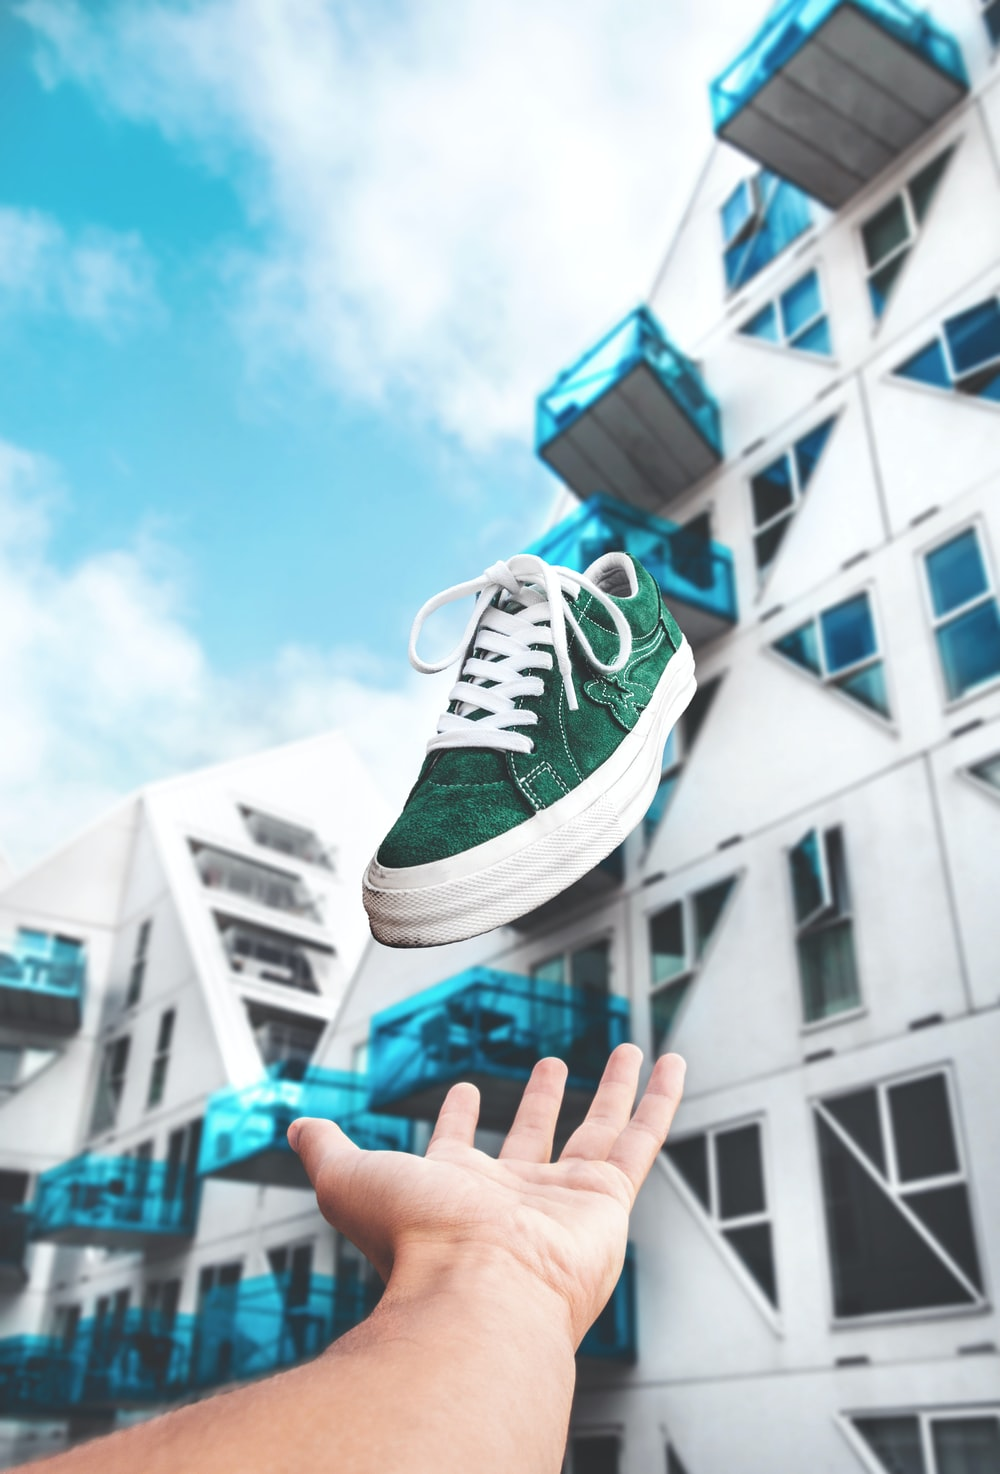 person throwing green and white low-top sneaker at daytime